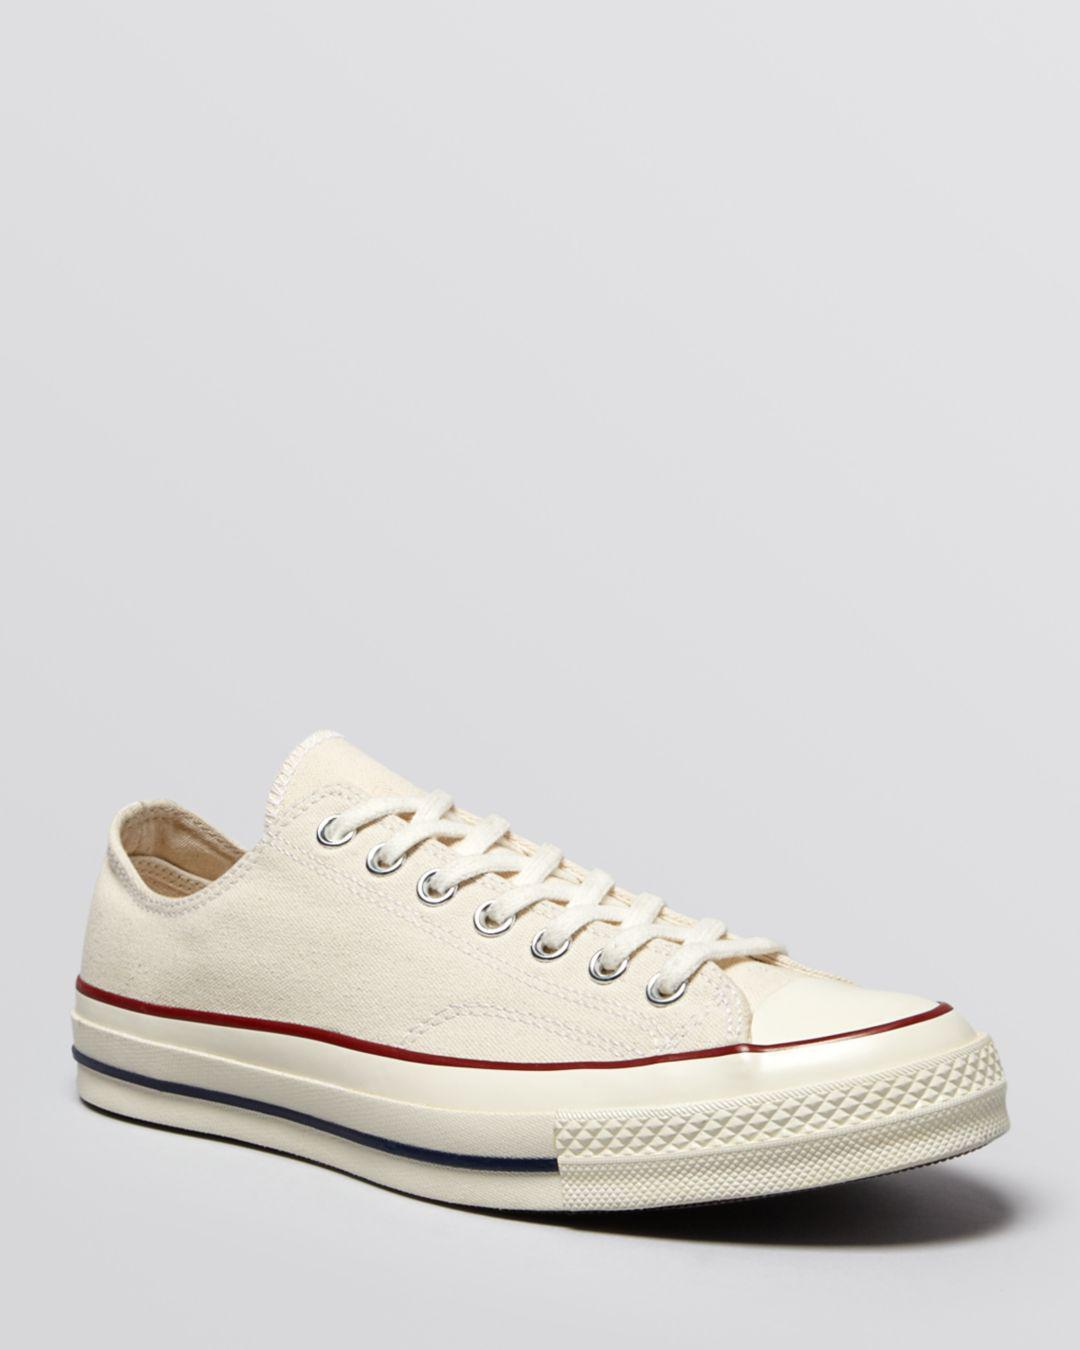 24b3827cc895 Lyst - Converse Men s Chuck Taylor All Star  70 Lace Up Sneakers in ...